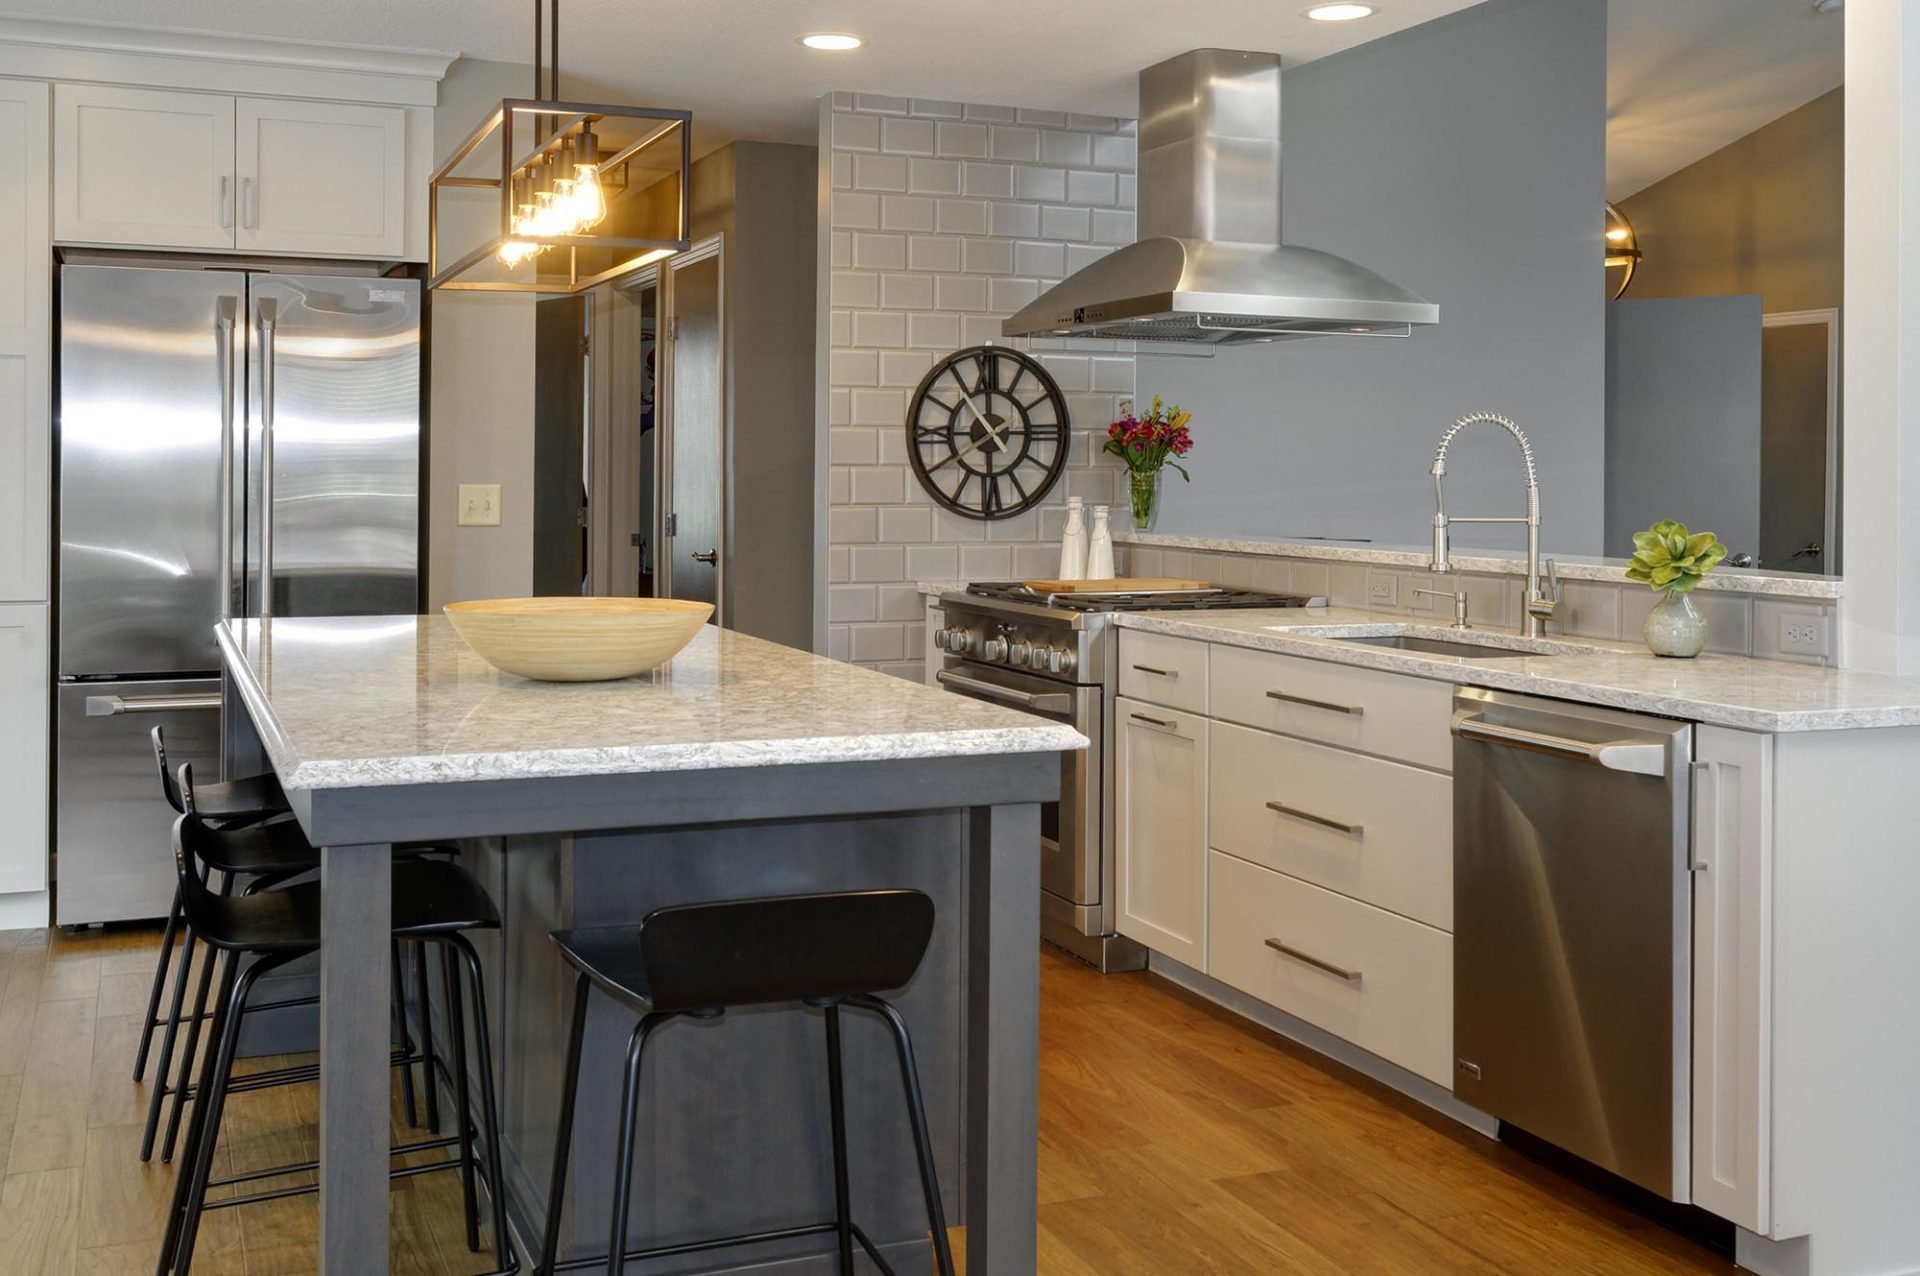 Kitchen, Pickerington, Dave Fox, Remodel, white cabinets, island, lighting, range hood, granite, dining room, pass through, coffee bar, subway tile, farmhouse